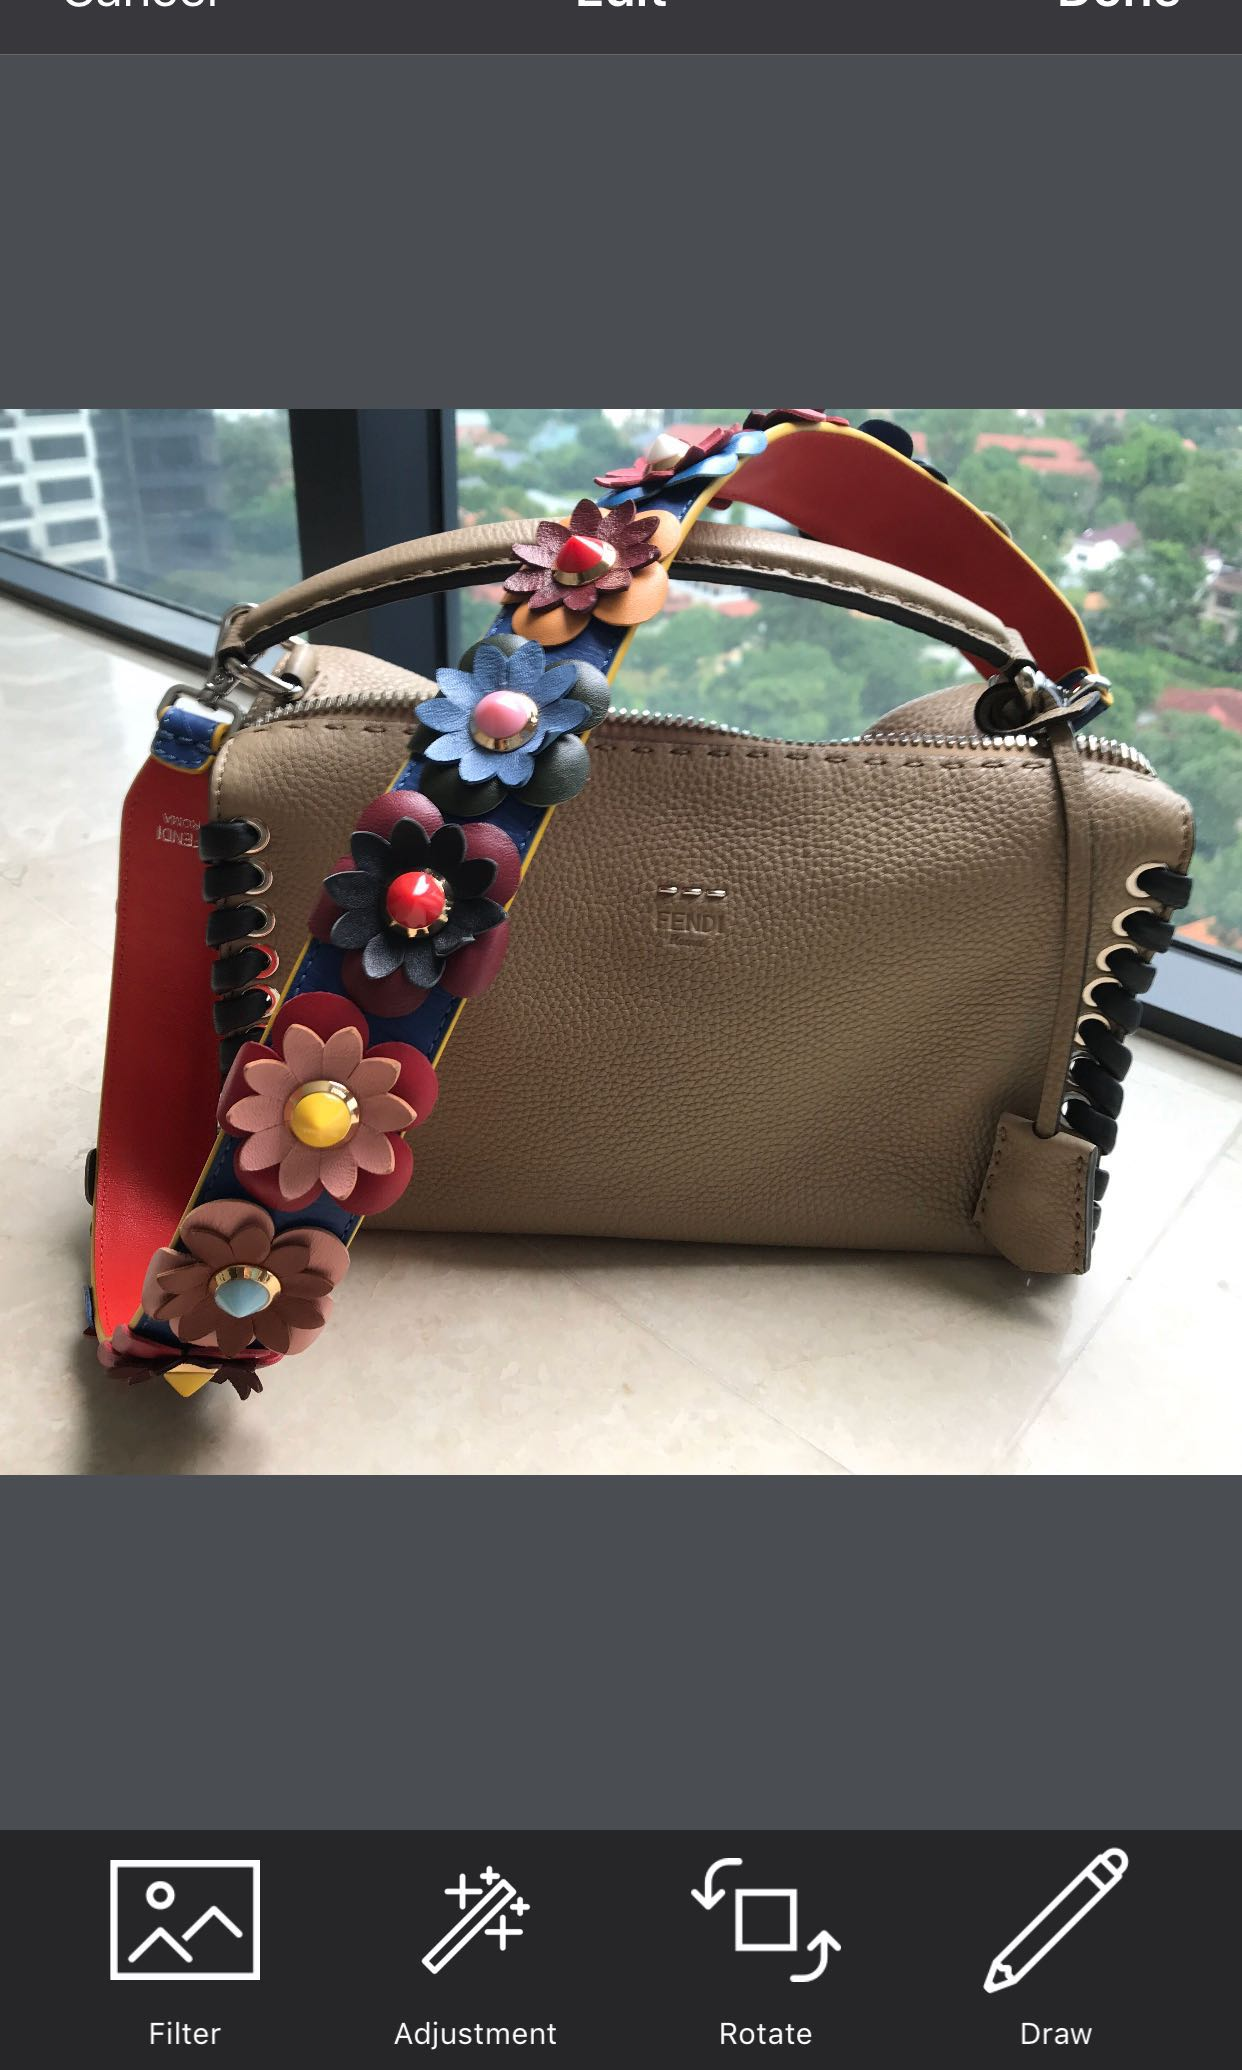 6845cd3625 Authentic Ltd Edition Fendi Lei Bag with 2 straps